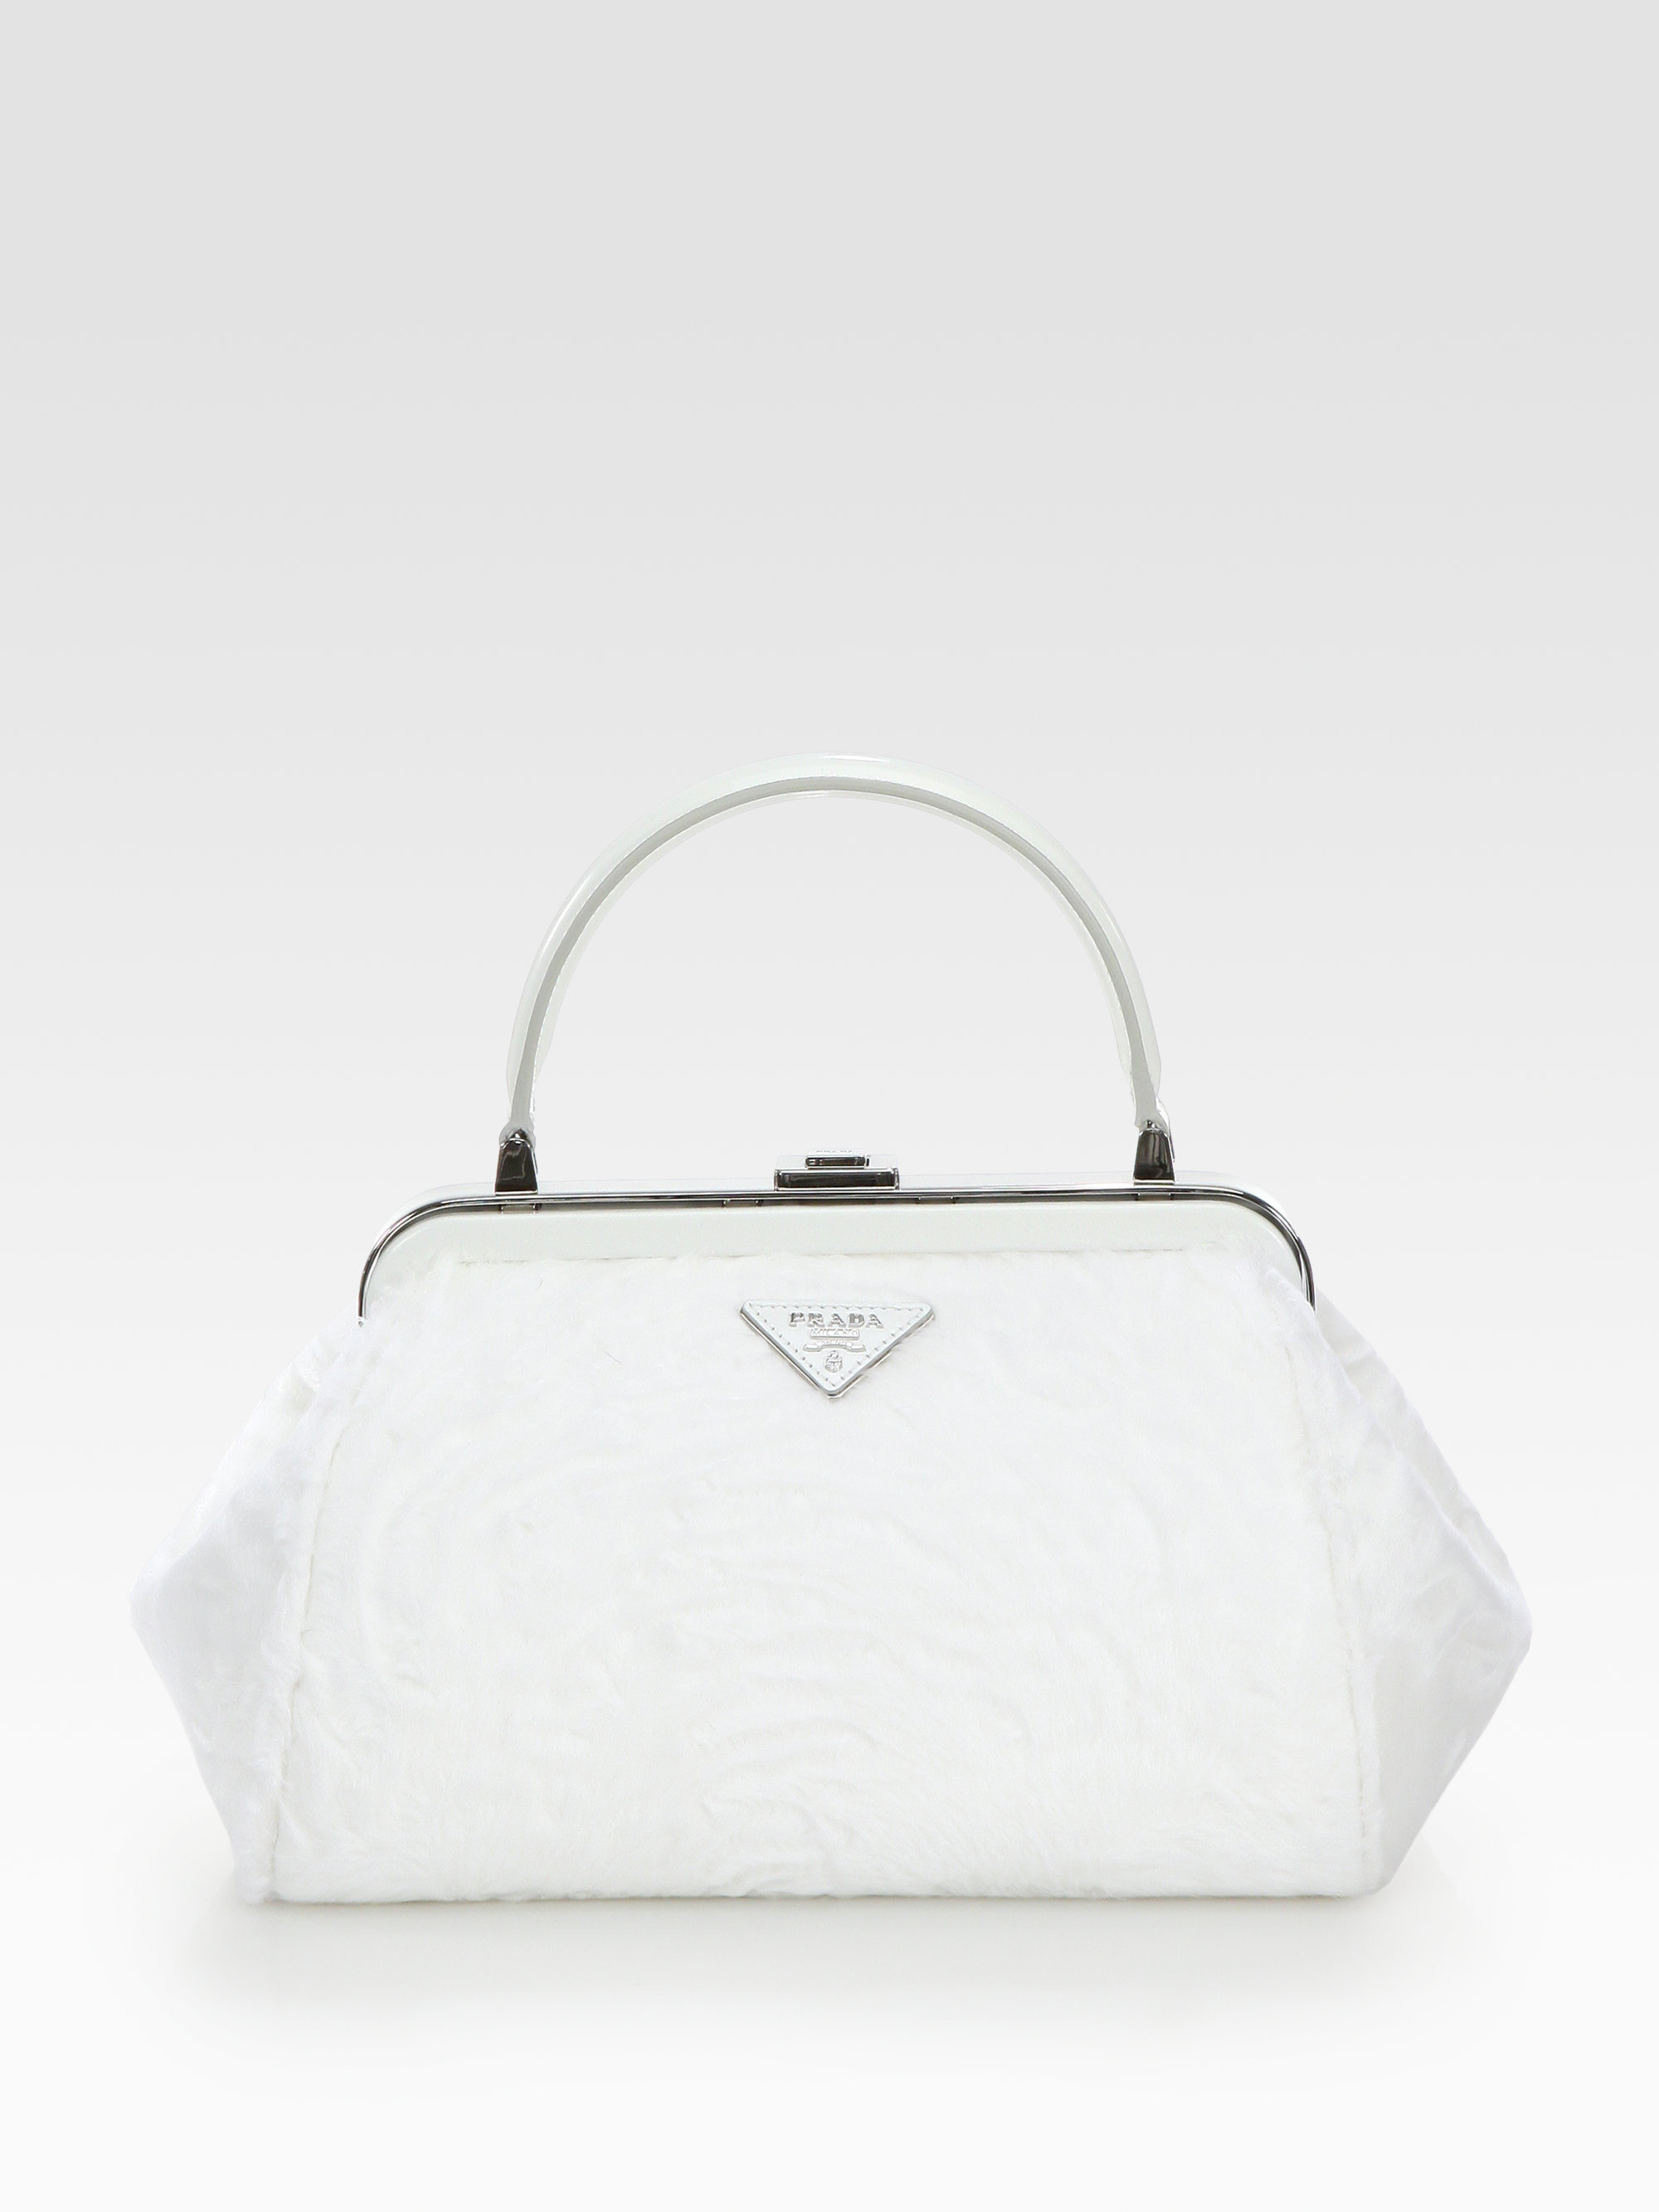 balenciaga look alike bags - prada frame bag white